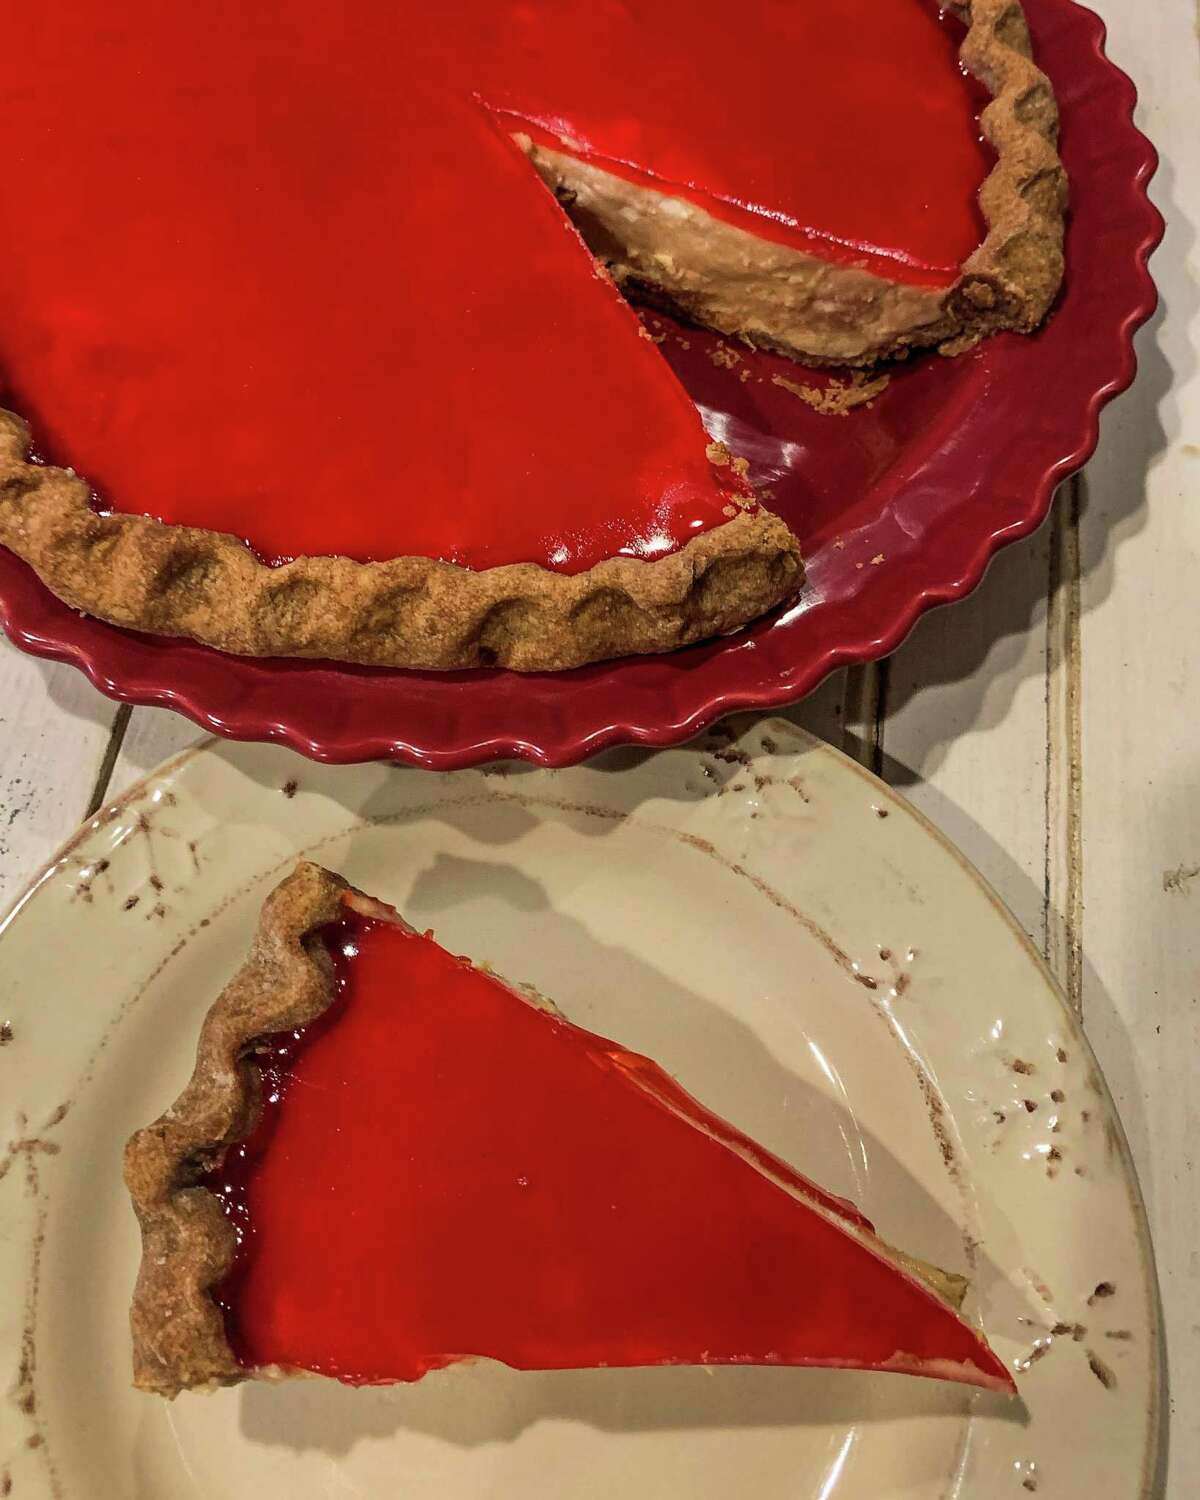 Peanut Butter Chiffon Pie with Mesquite Crust and Prickly Pear Jelly Glaze